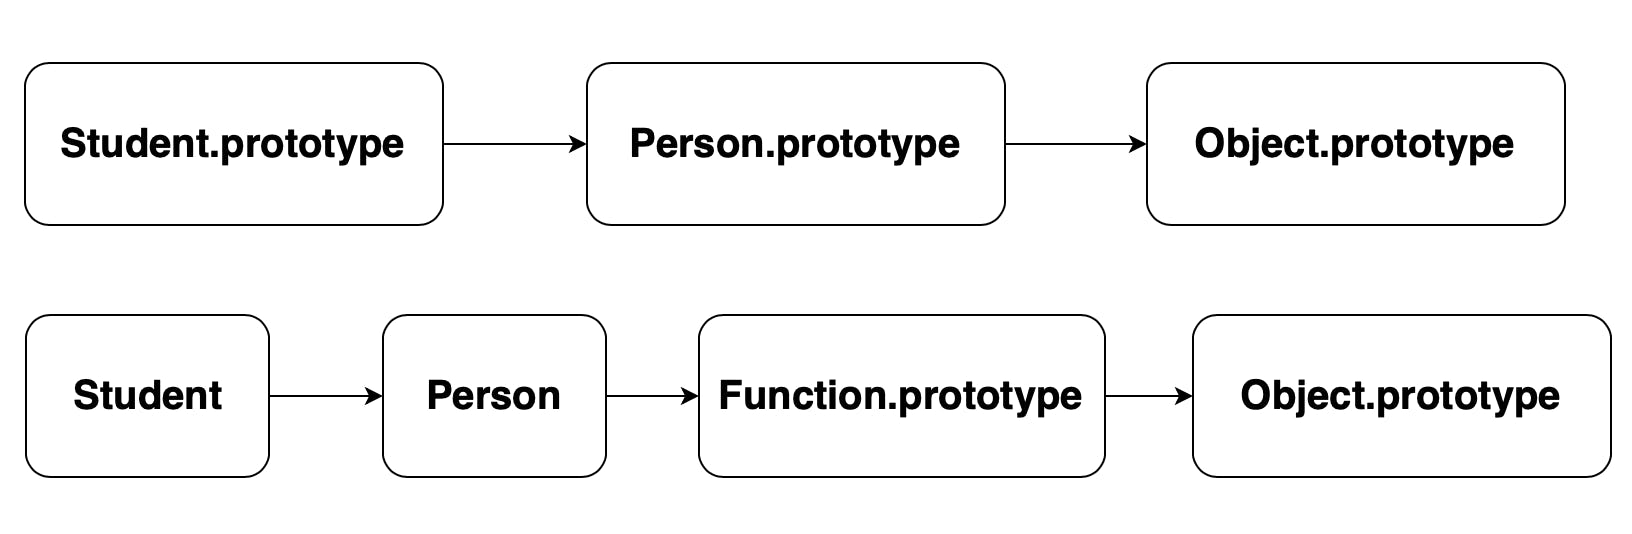 prototype chains made by extends keyword